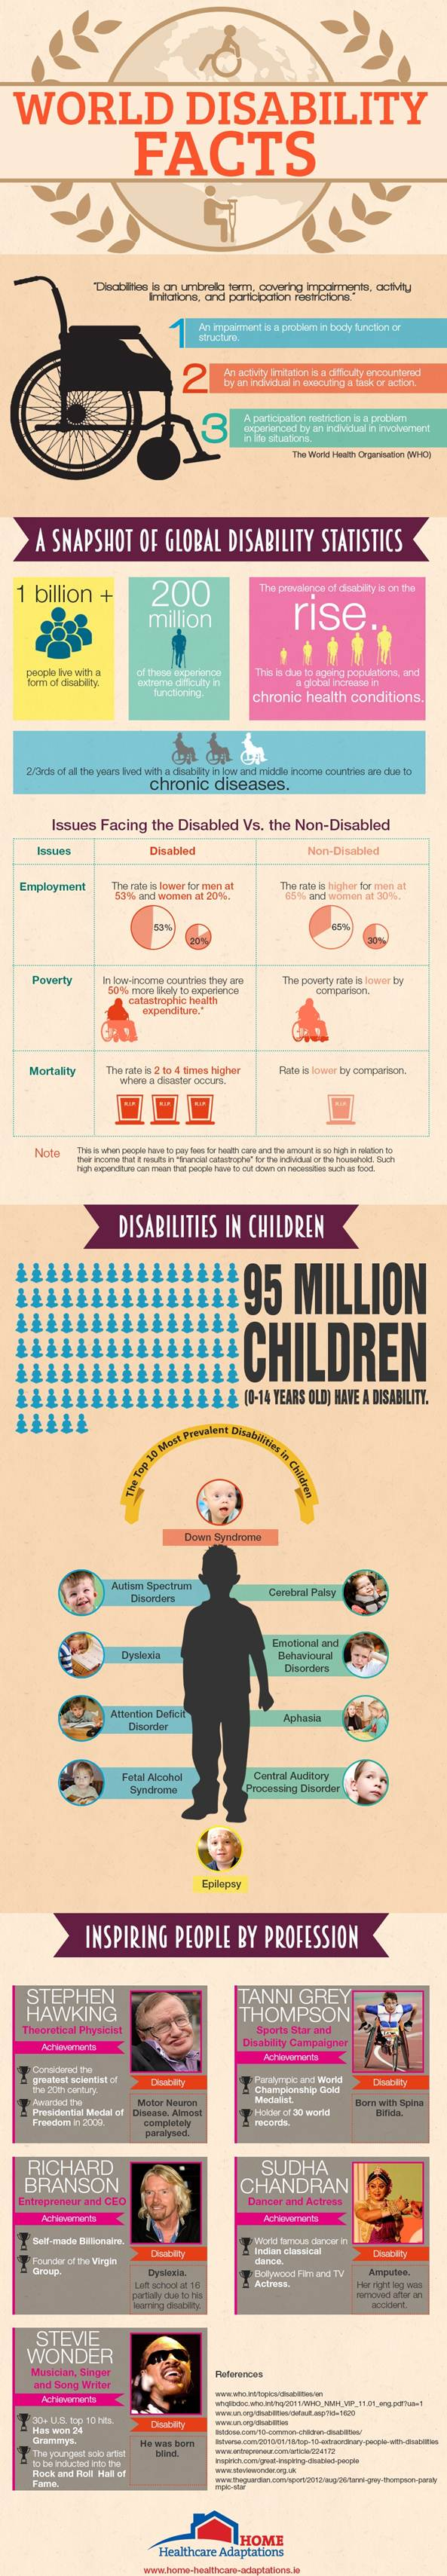 World Disability Fact